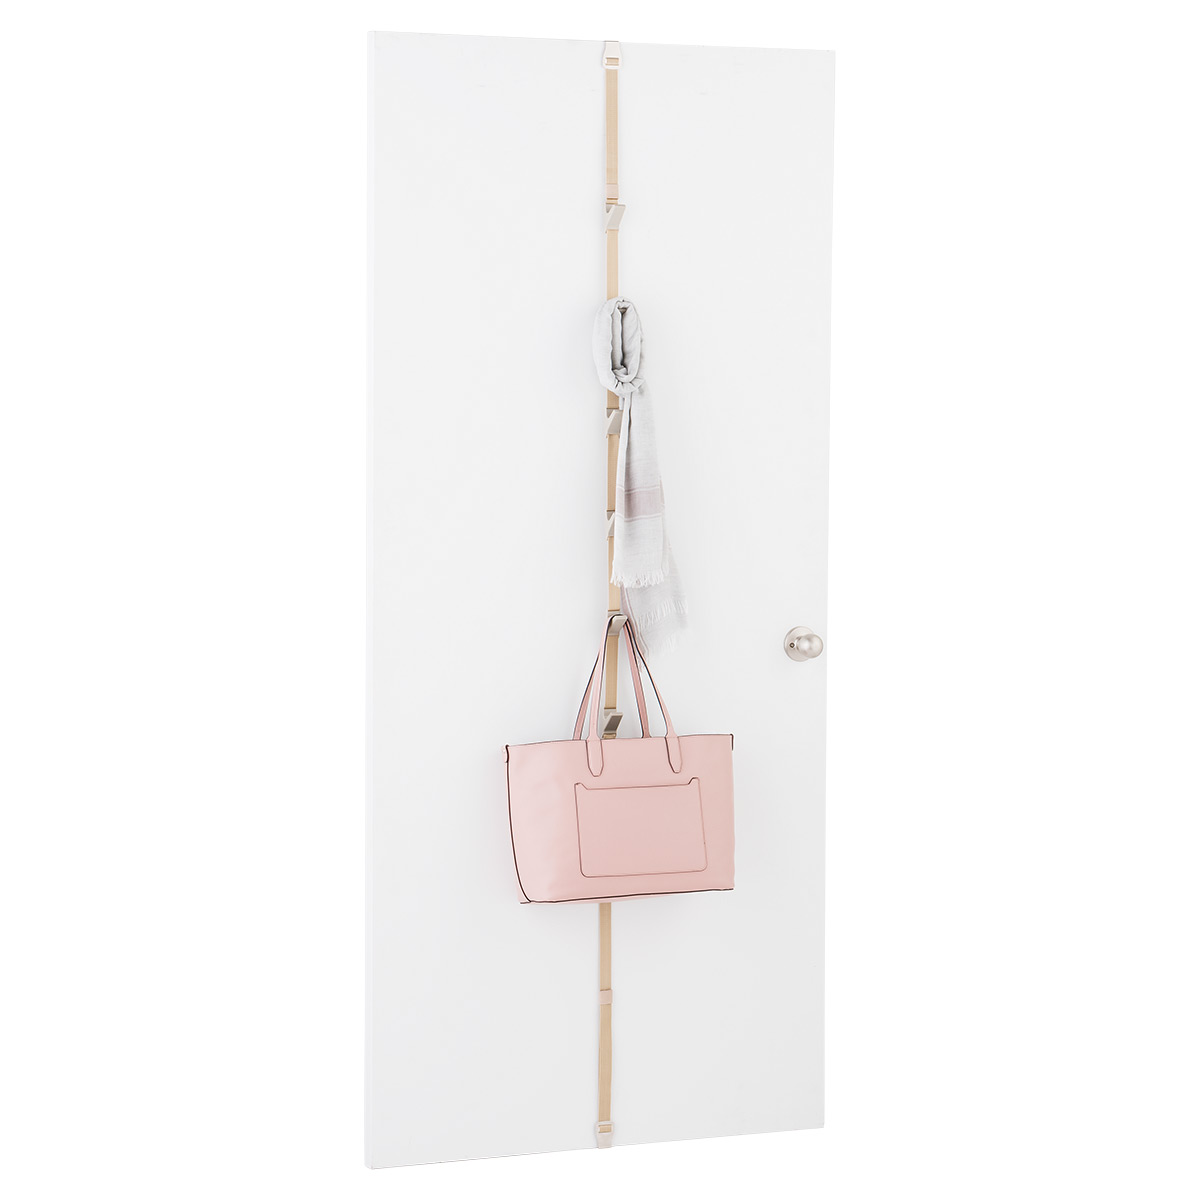 Over the Door Handbag & Accessory Hook